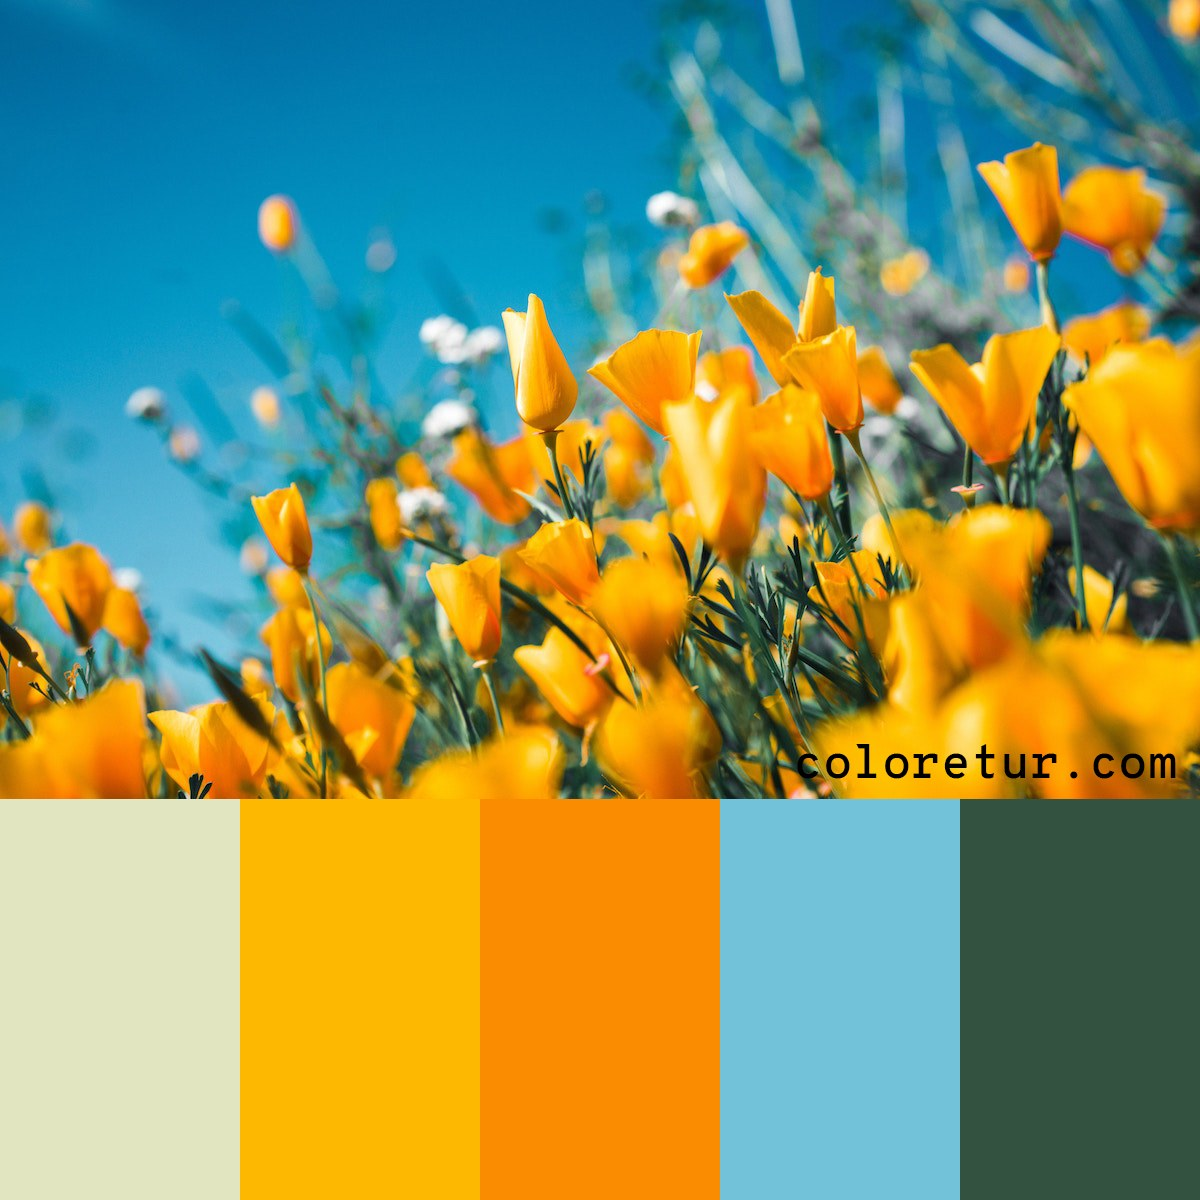 A bright, summery palette from a field of golden blooms.